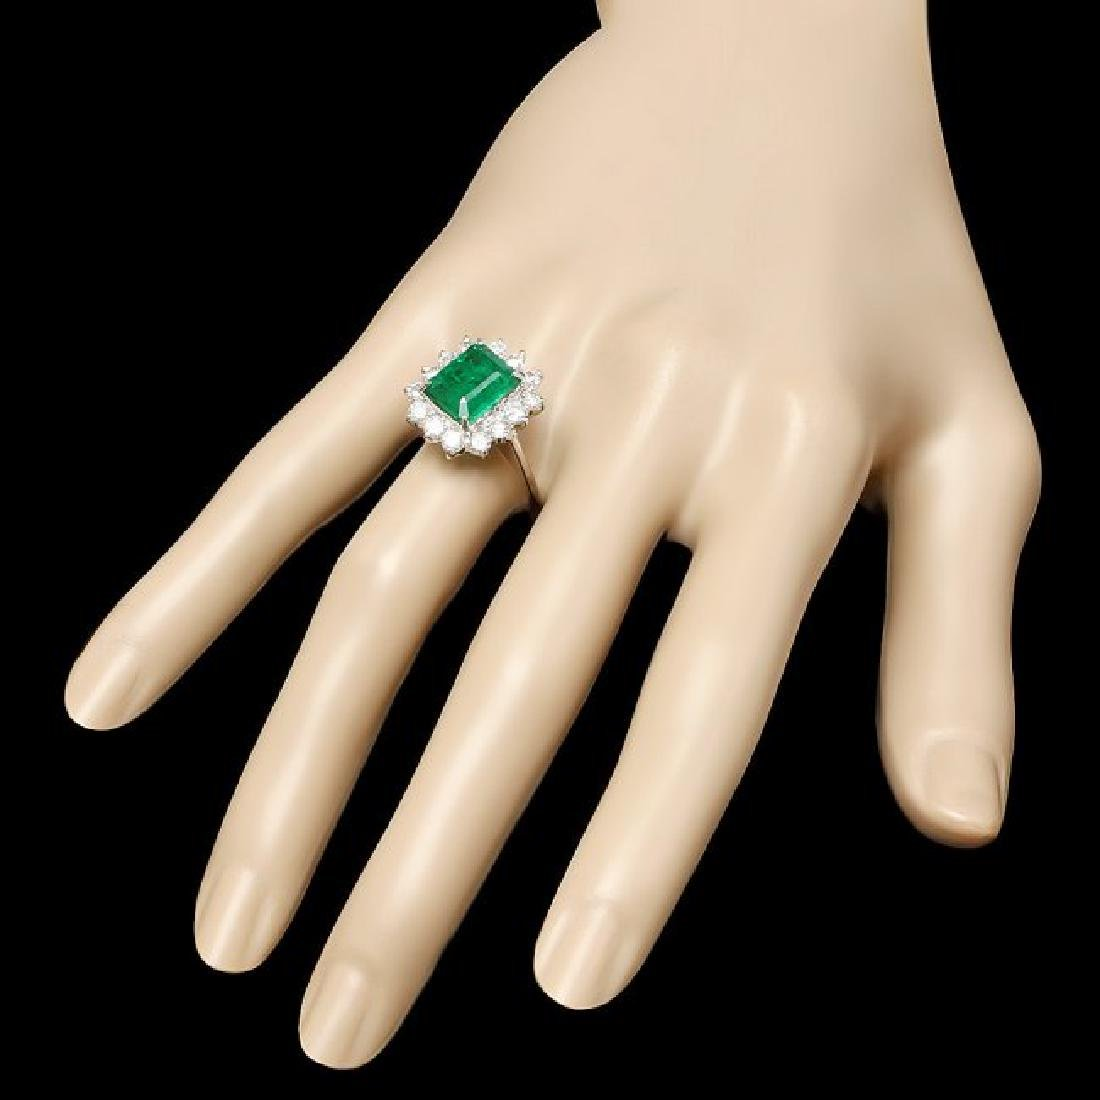 14k White Gold 3.13ct Emerald 1.35ct Diamond Ring - 3